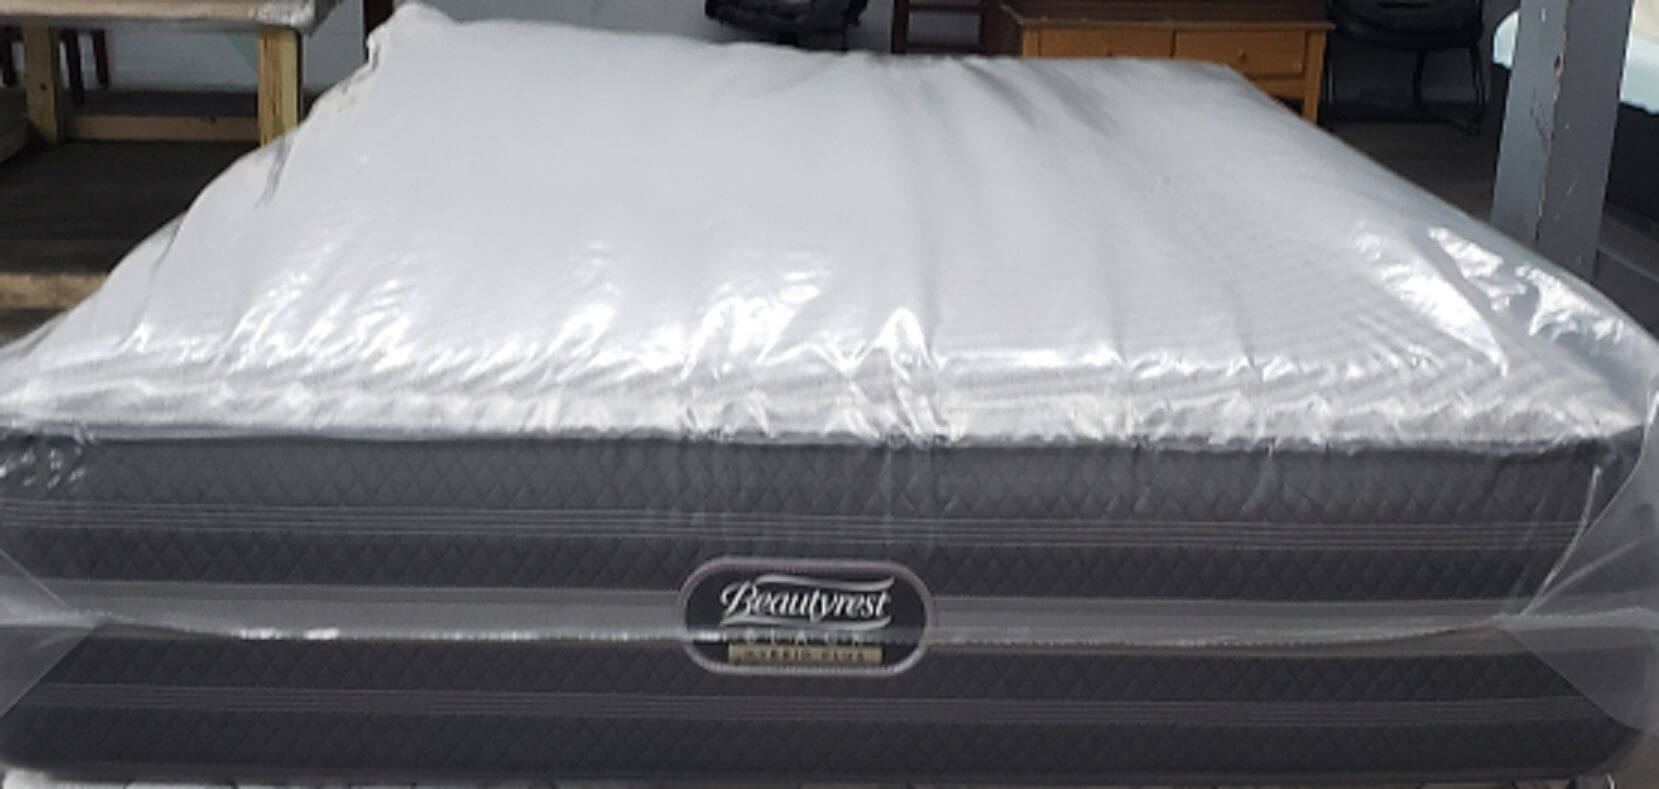 Beautyrest Black King Size Simmons Beautyrest Black Hybrid Jennings 14 5